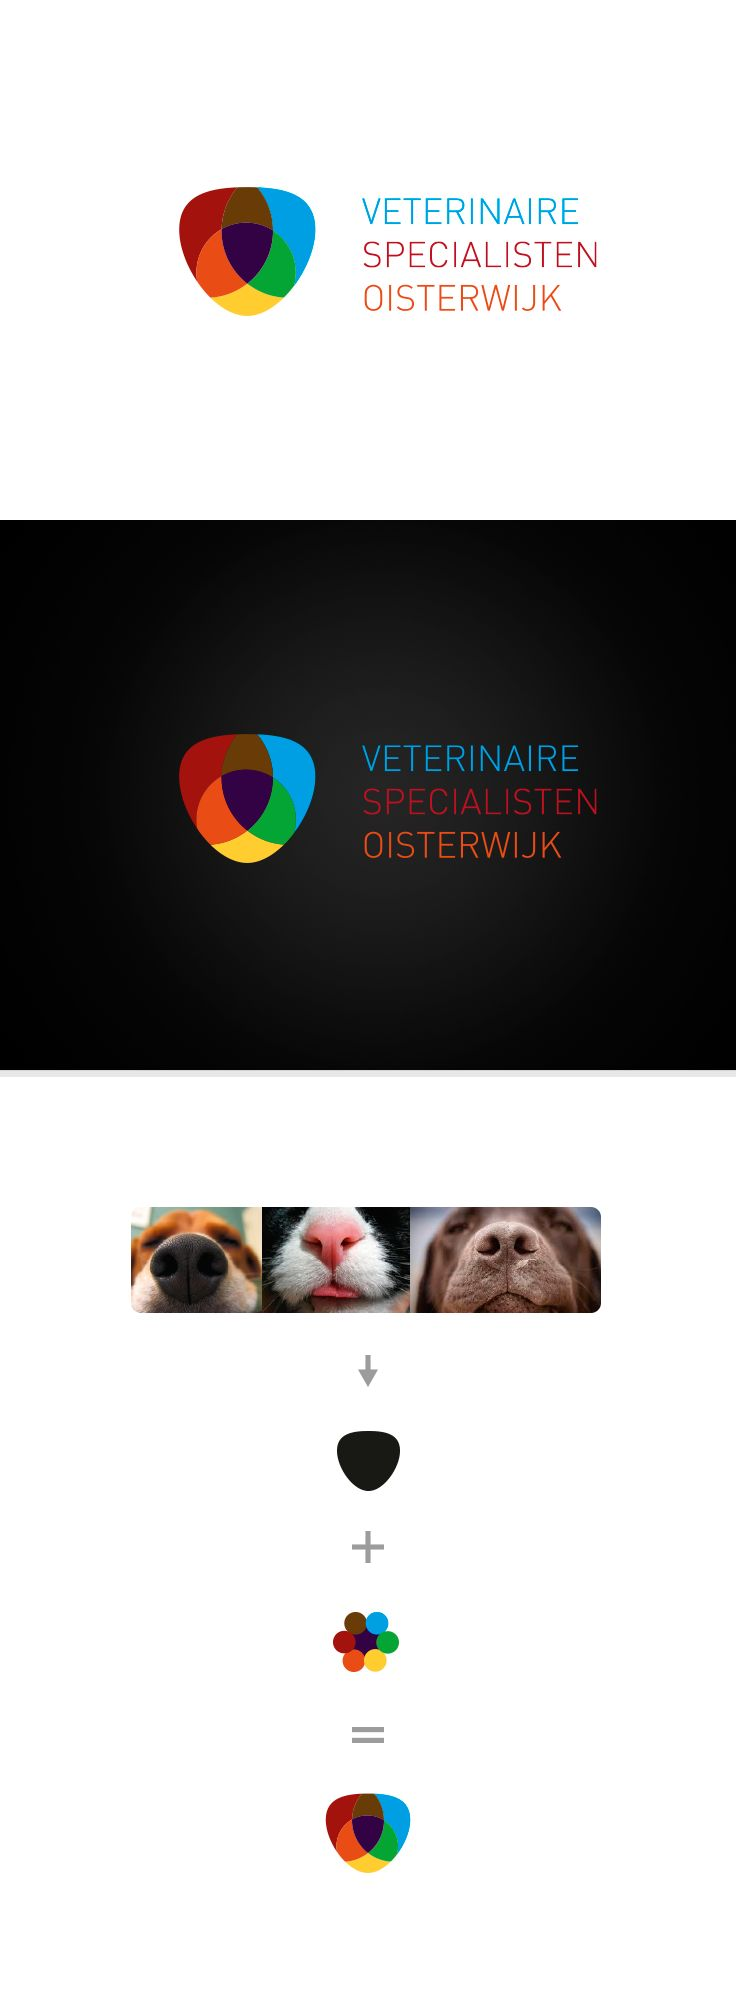 Logo design for a veterinary Specialist. The question asked: Design a logo that is abstract, simple en shows that we make a difference? O, and don't show any animals!